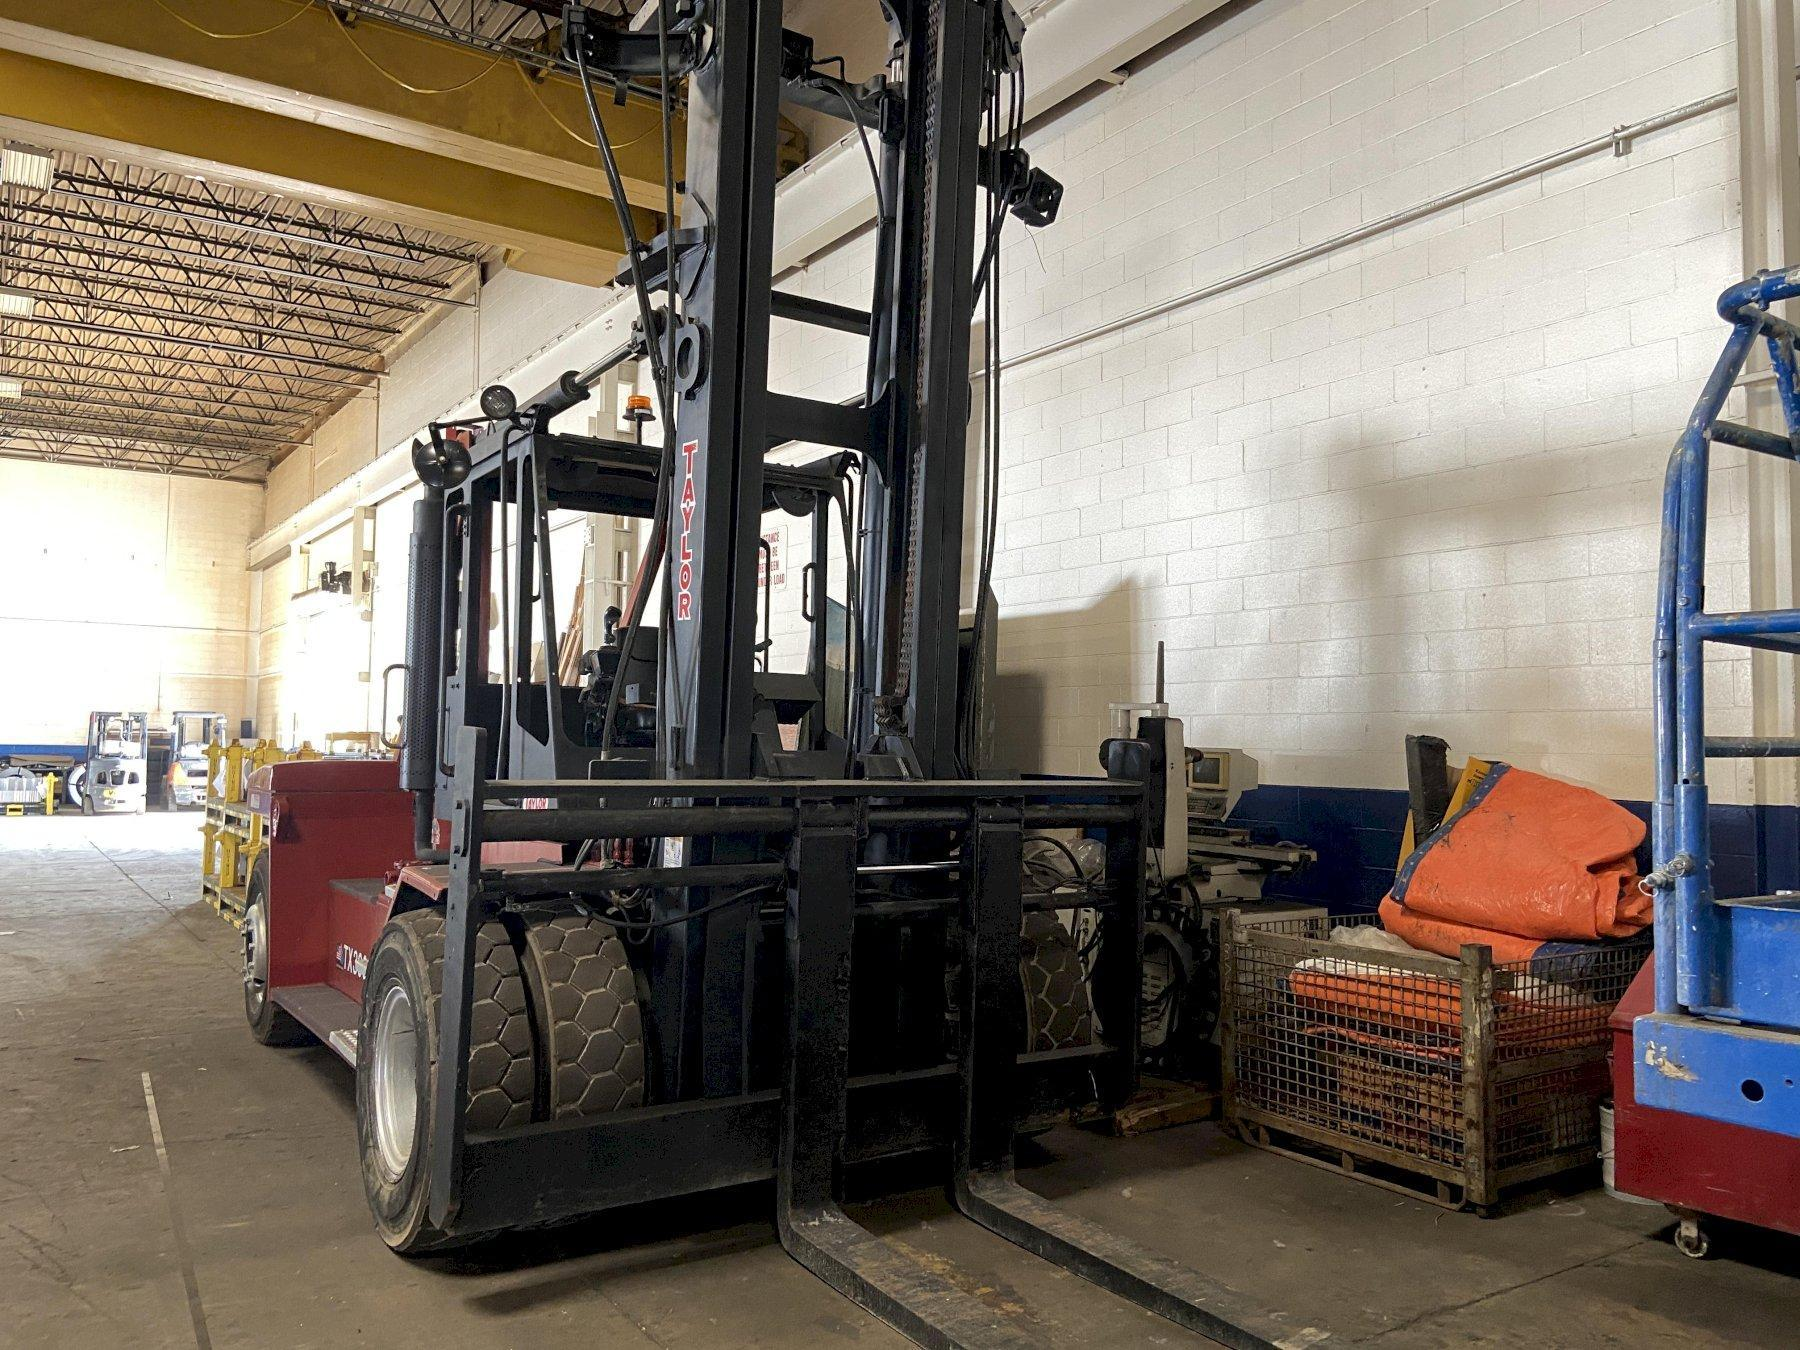 Taylor TX-360L (Big Red) 36,000 LB Forklift, 135